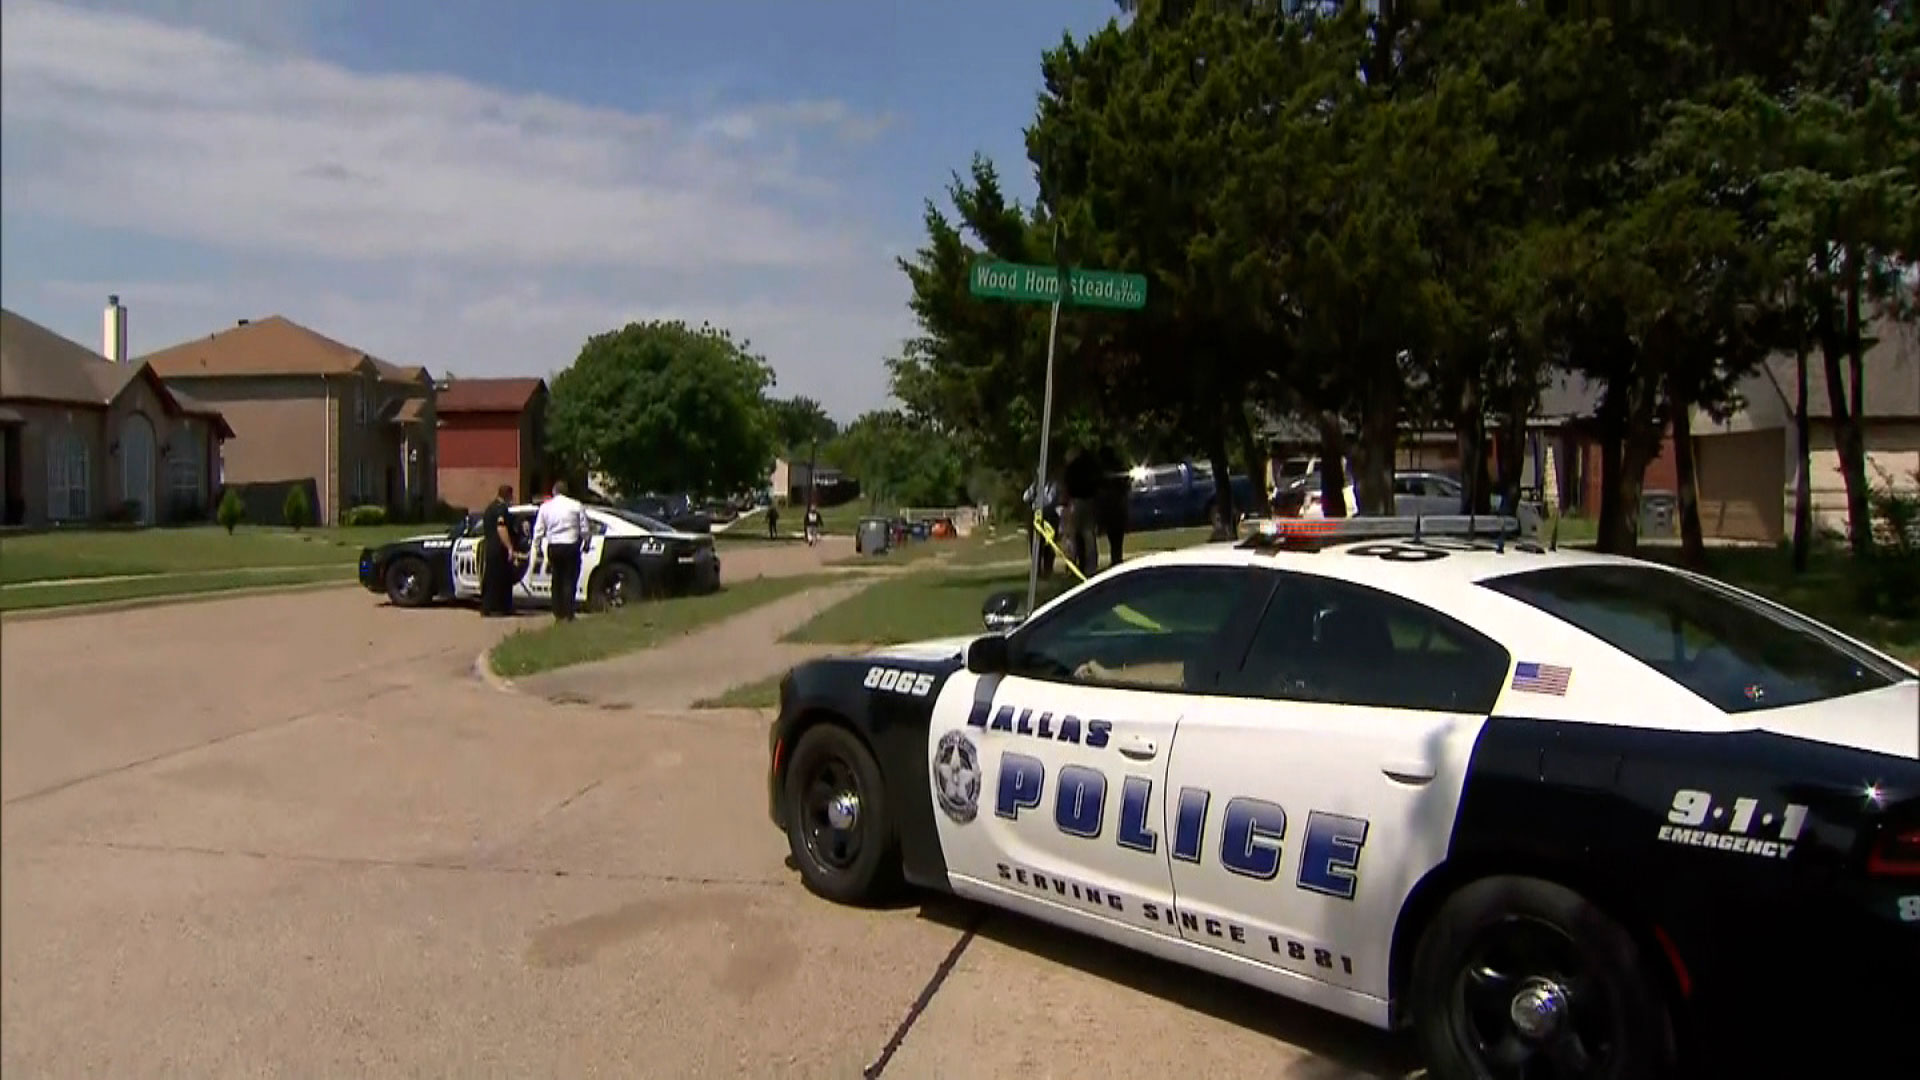 A 4-year-old boy was found on a street 'murdered in a violent act,' Dallas police say